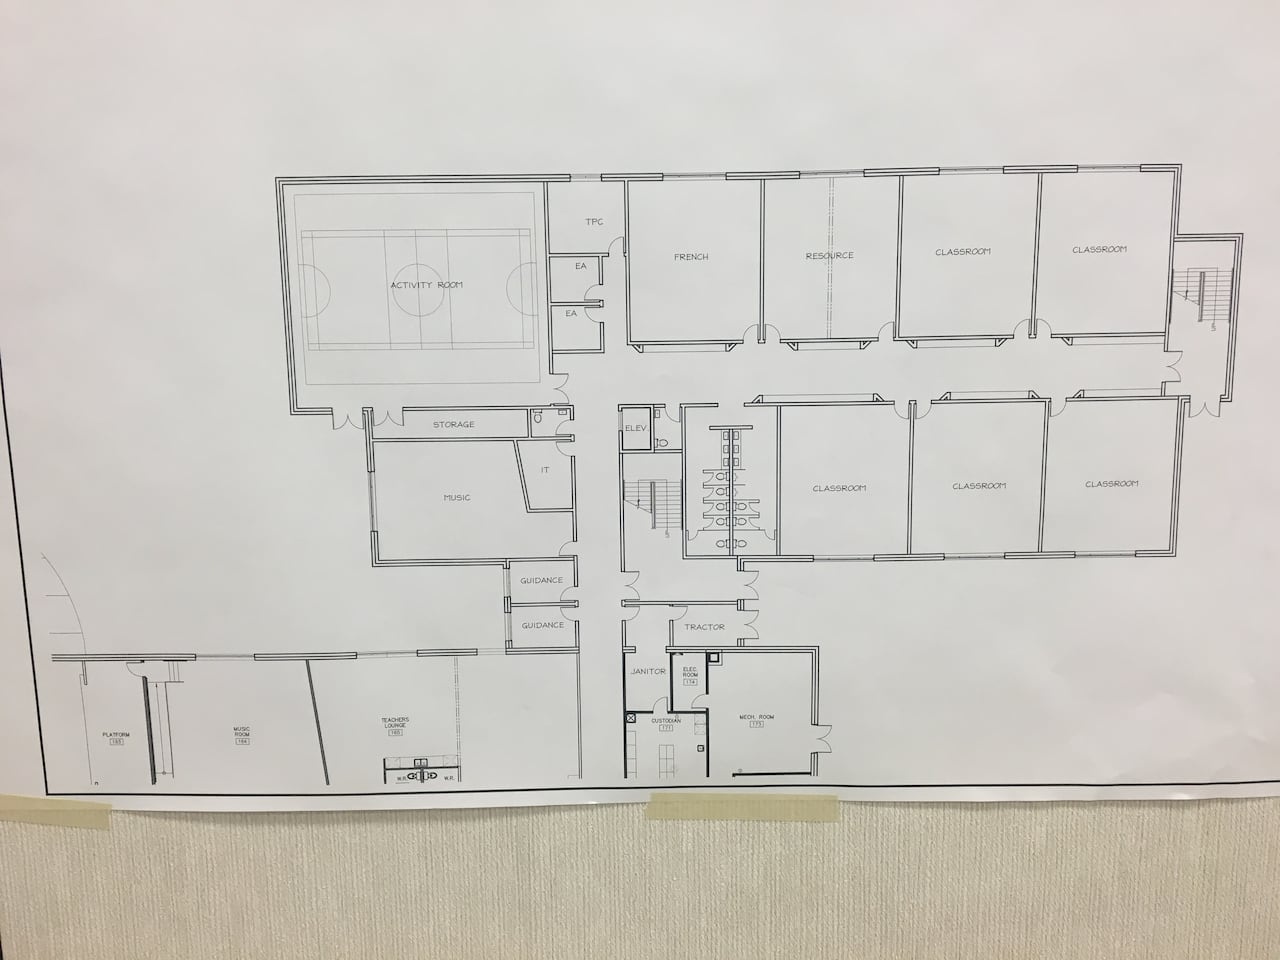 Detailed plans for 2-storey Stratford Elementary School expansion